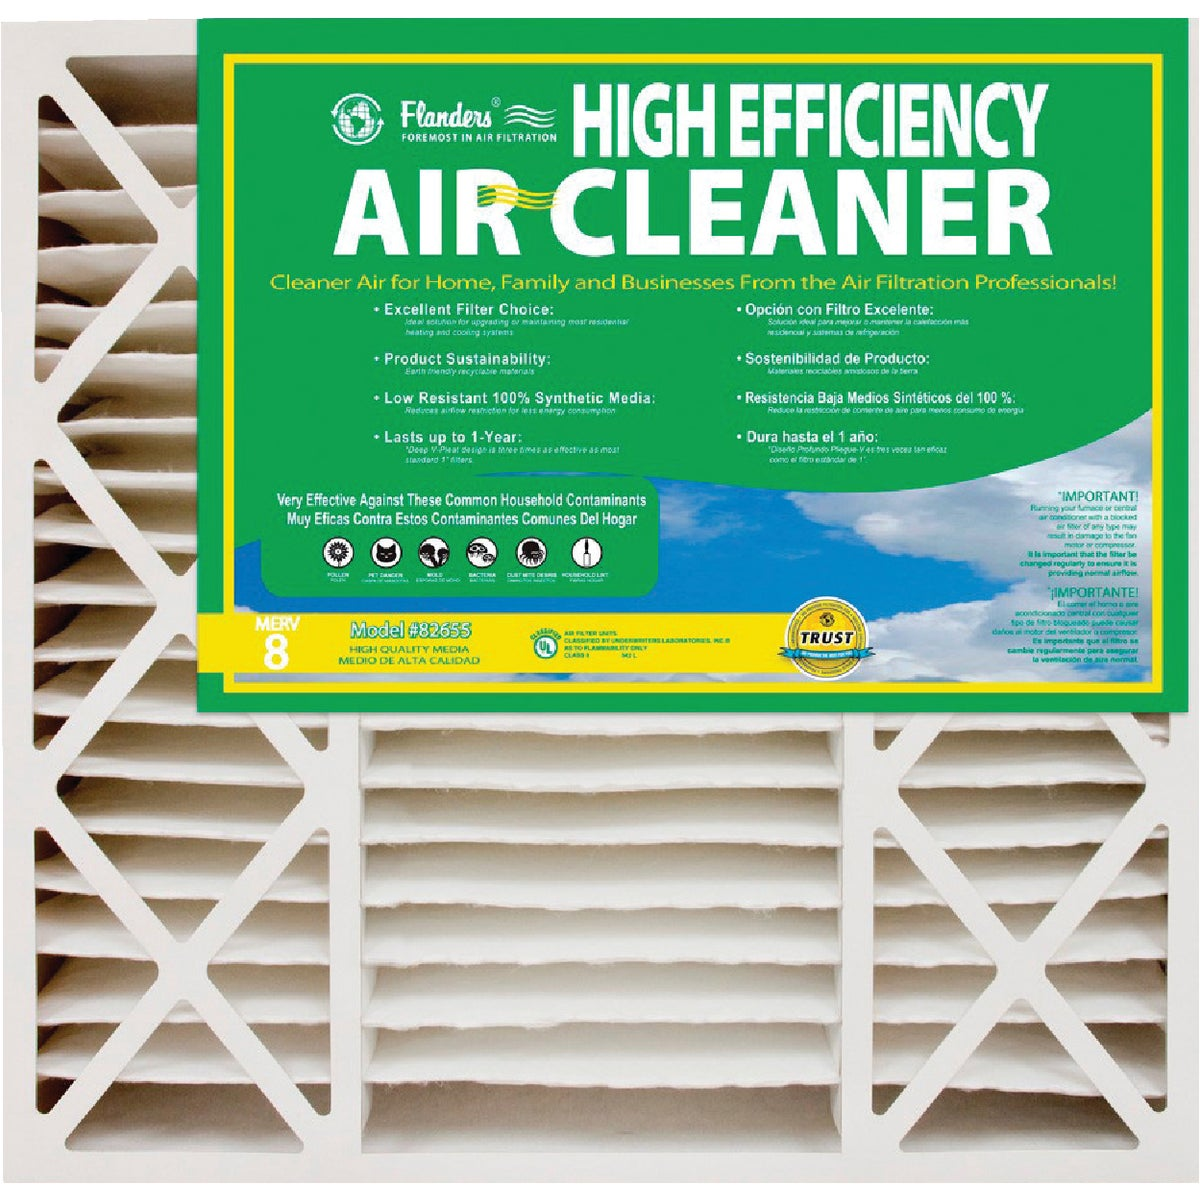 16X25X4.5 FURNACE FILTER - 82655.0451625 by Flanders Corp